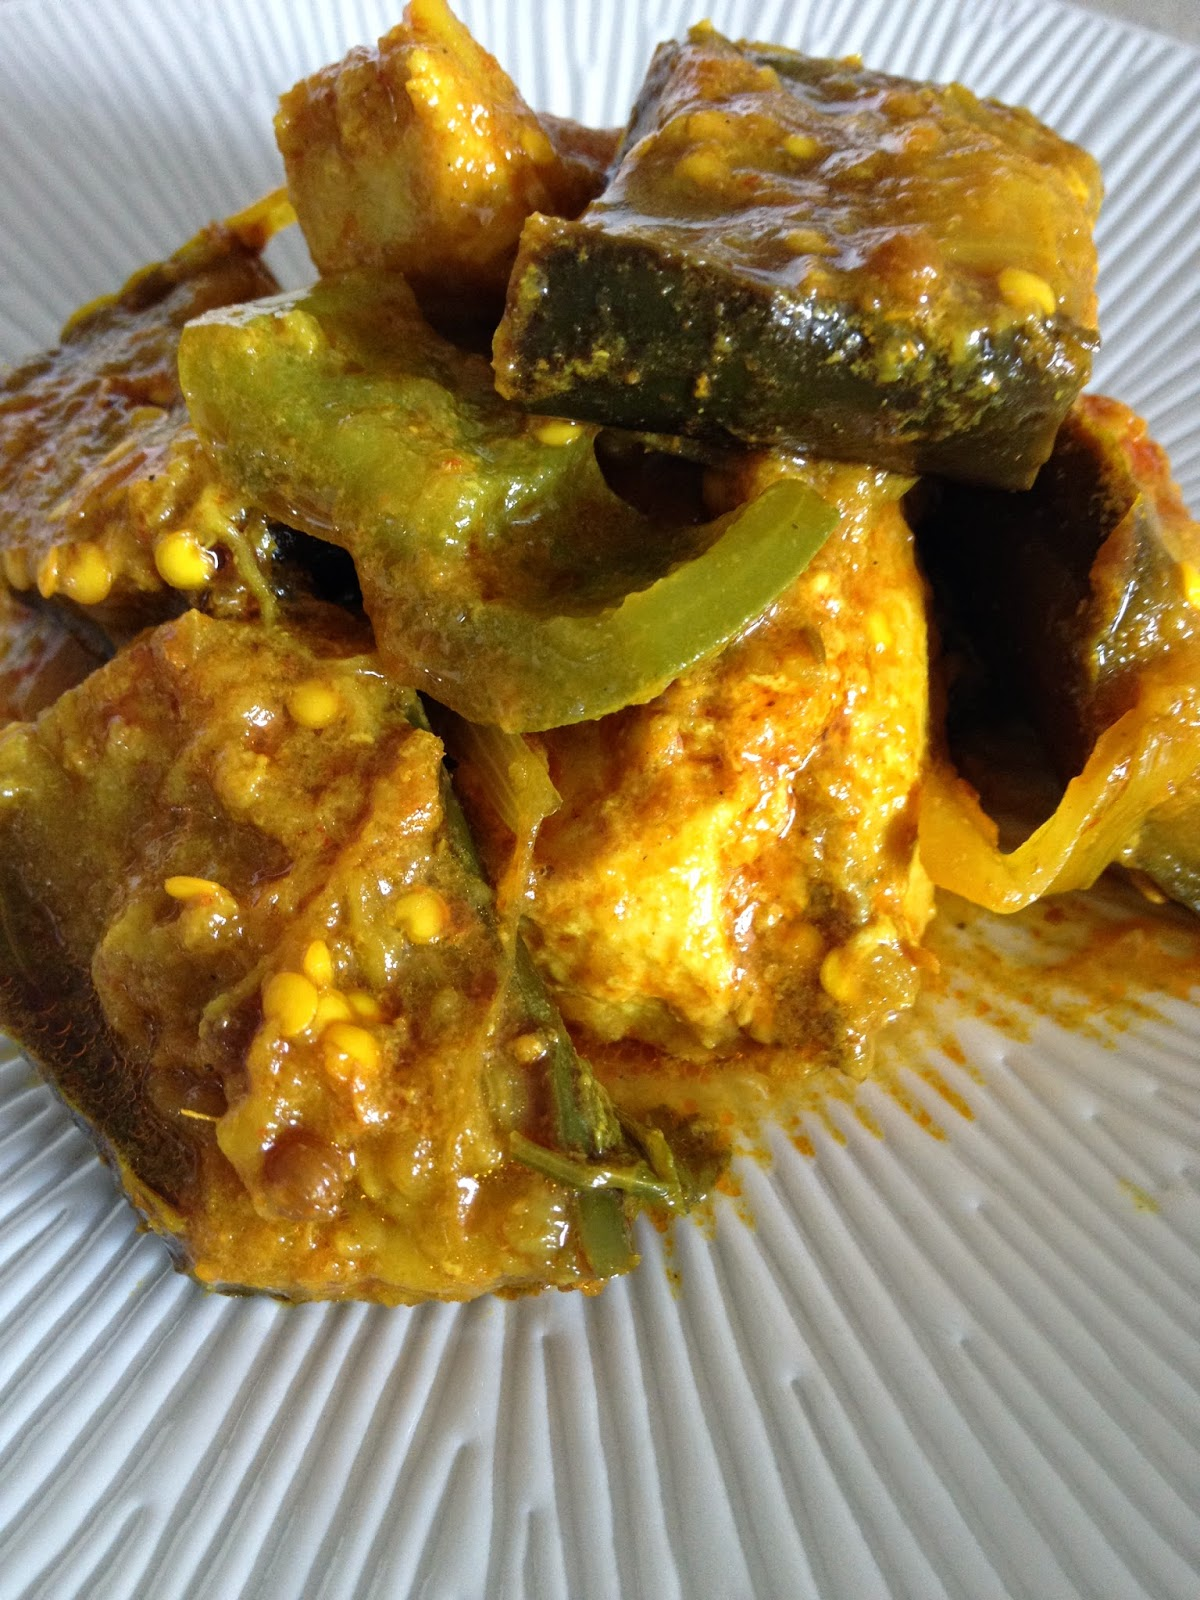 colombo, curry, curcuma, aubergines, cuisine antillaise, poisson, thon, marlin